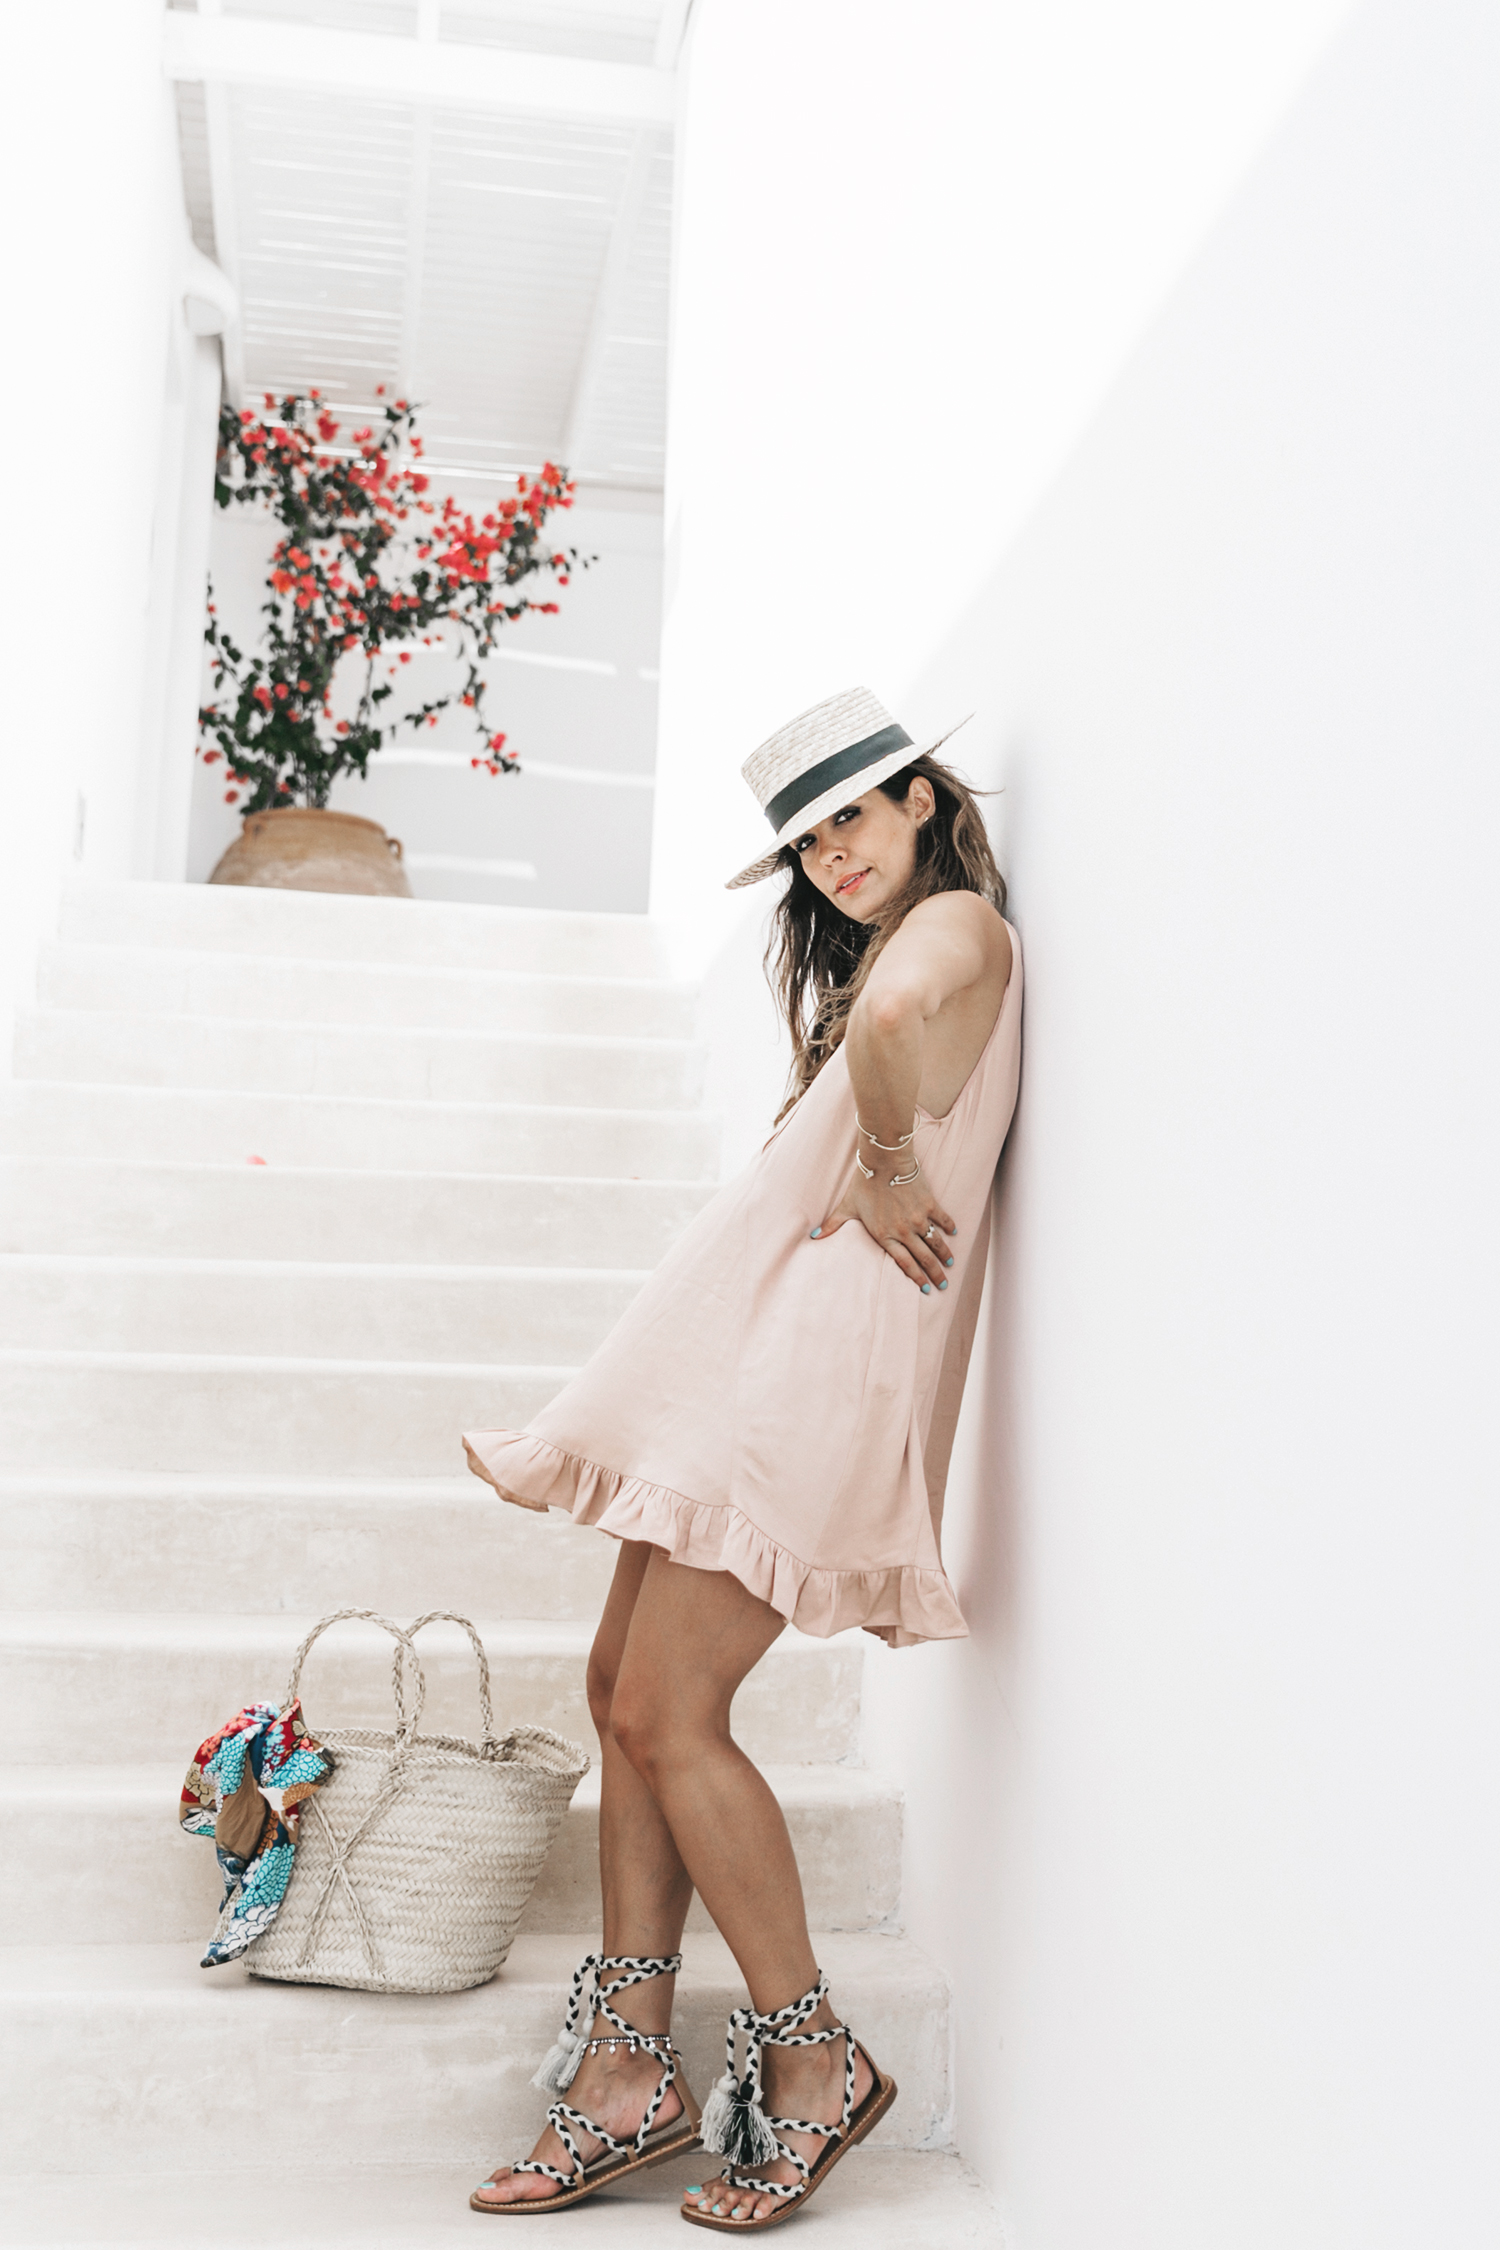 Soludos-Soludos_Escapes-Light_Pink_Dress-Knotted_Sandals-Mykonos-Greece-Collage_Vintage-Summer_Outfit-Street_Style-34